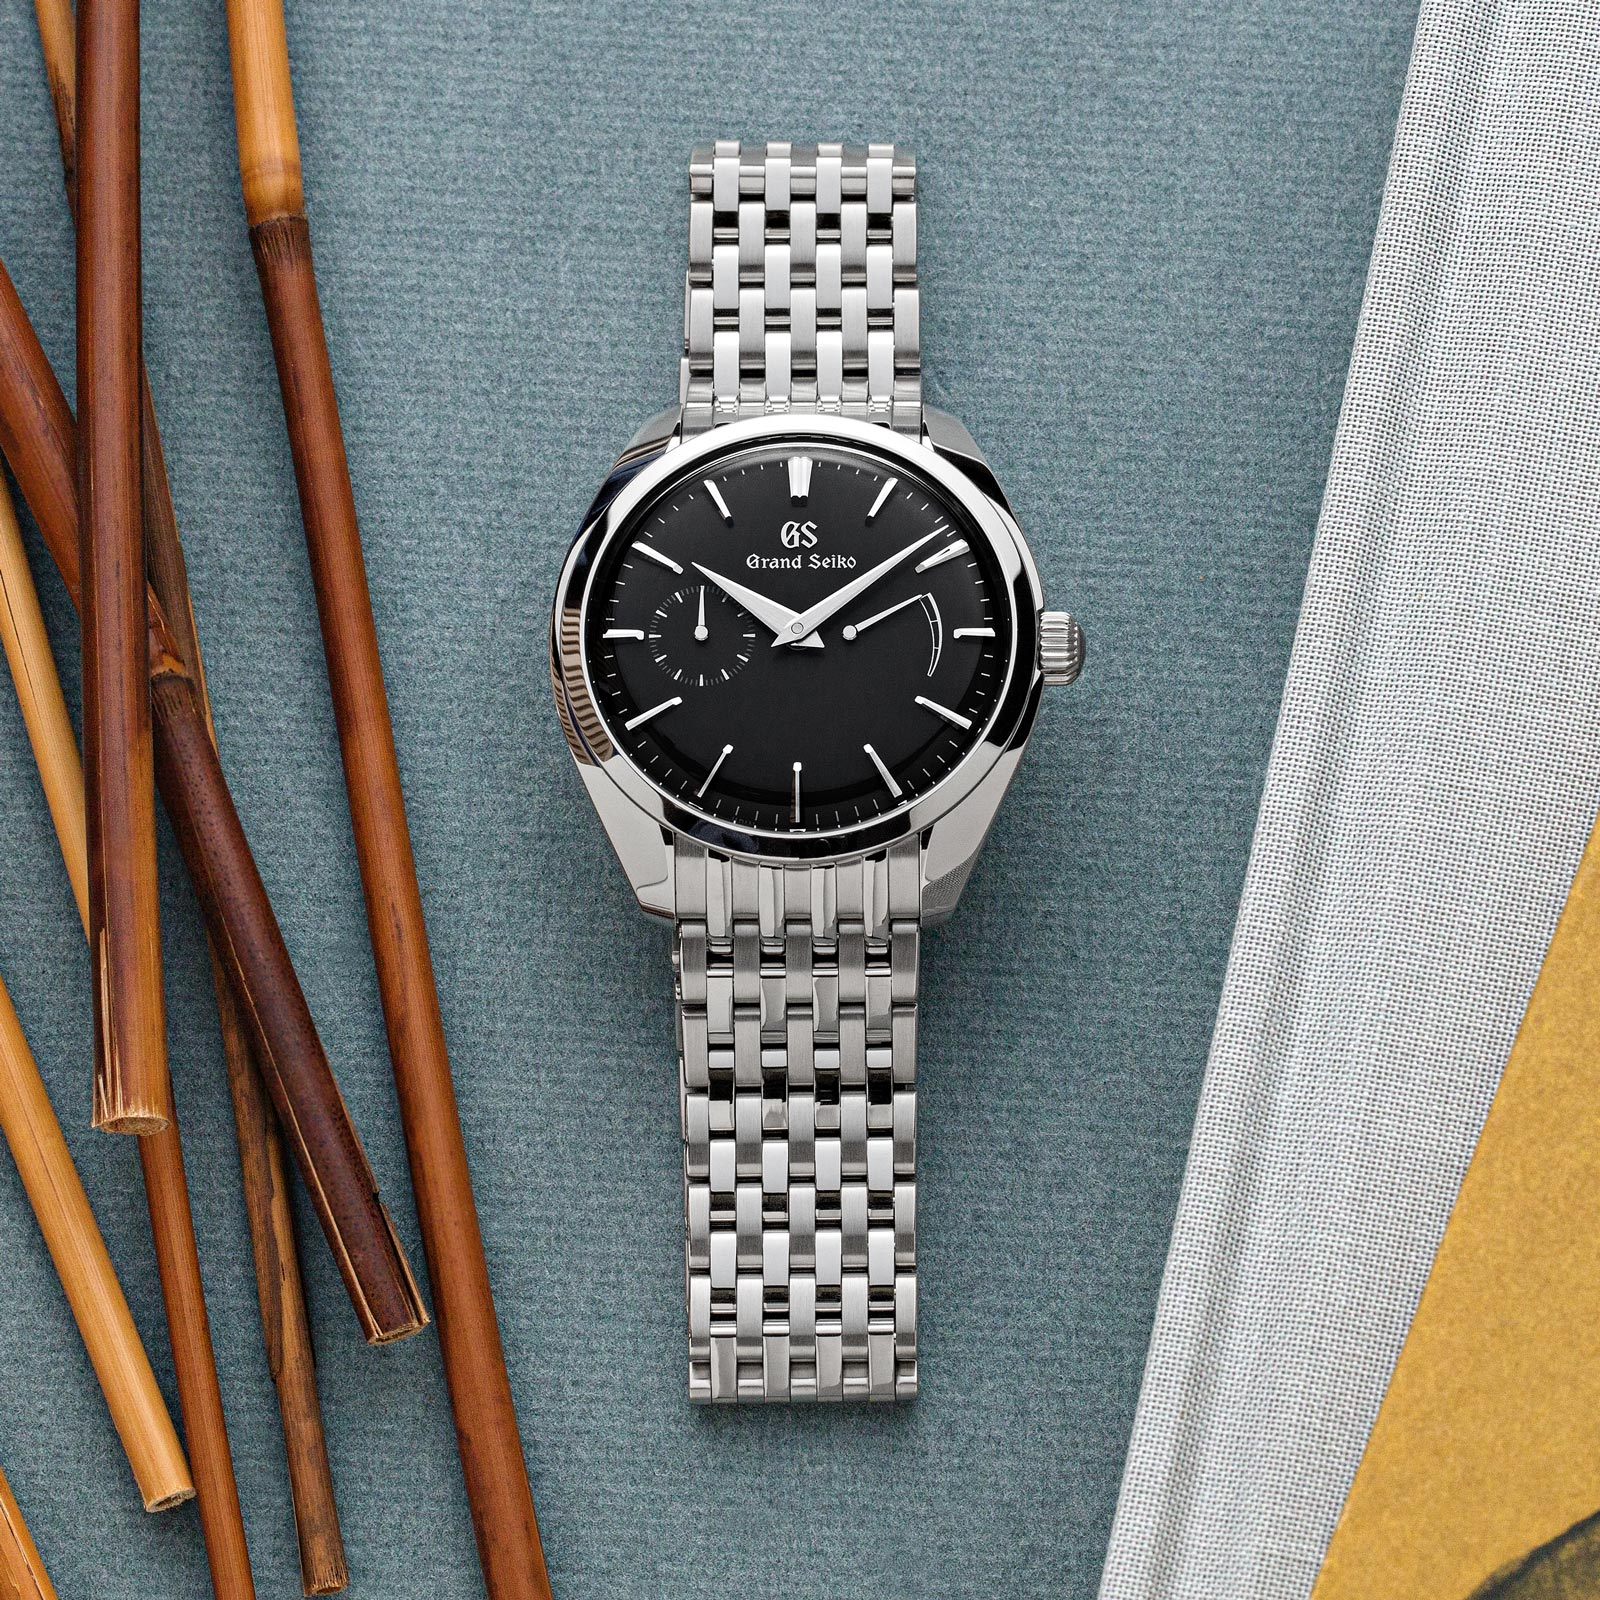 Grand Seiko SBGK009 grey dial stainless steel case and bracelet men's dress watch.